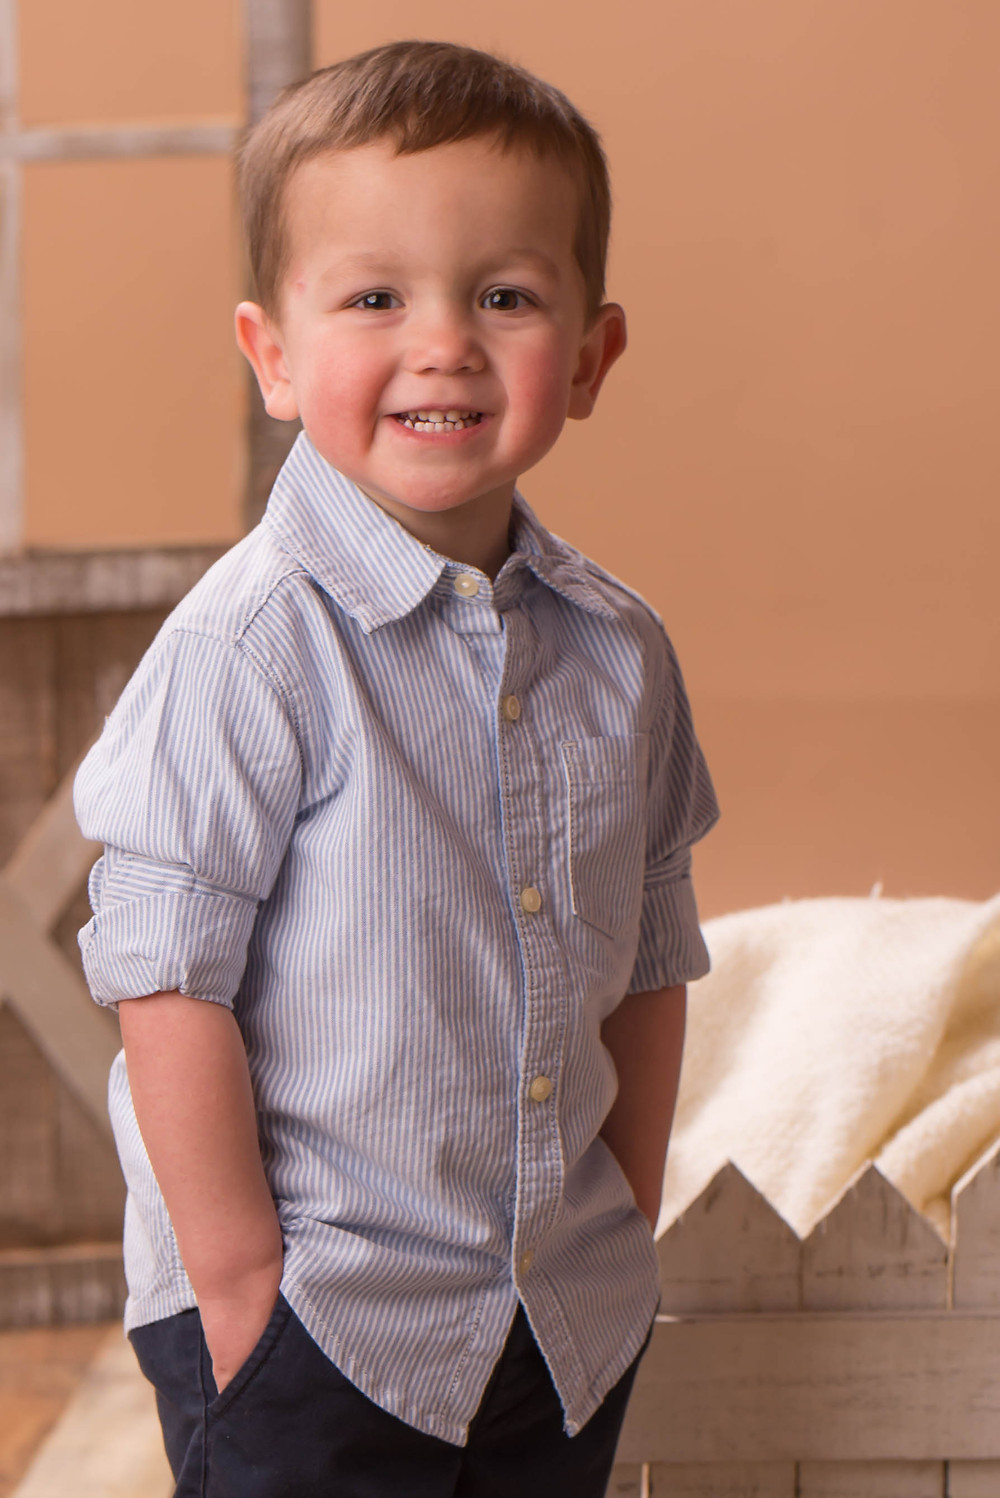 Hansom 2 year old boy in his Sunday best